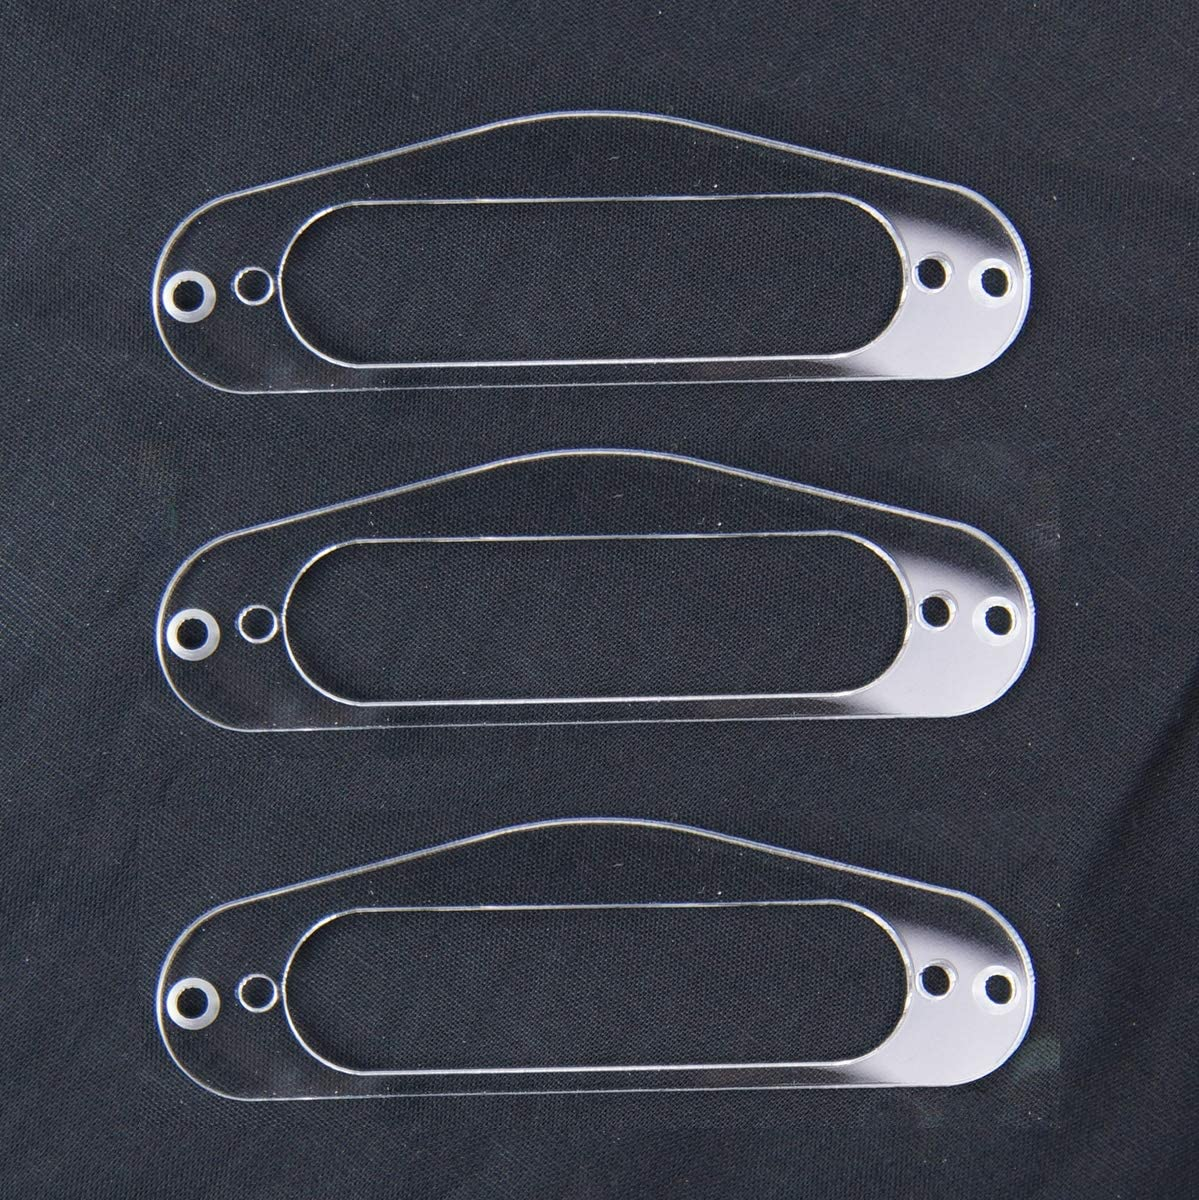 Clear Transparent 3x Pickup Mounting Ring Plate for Regular Single-coil Guitar Pickup